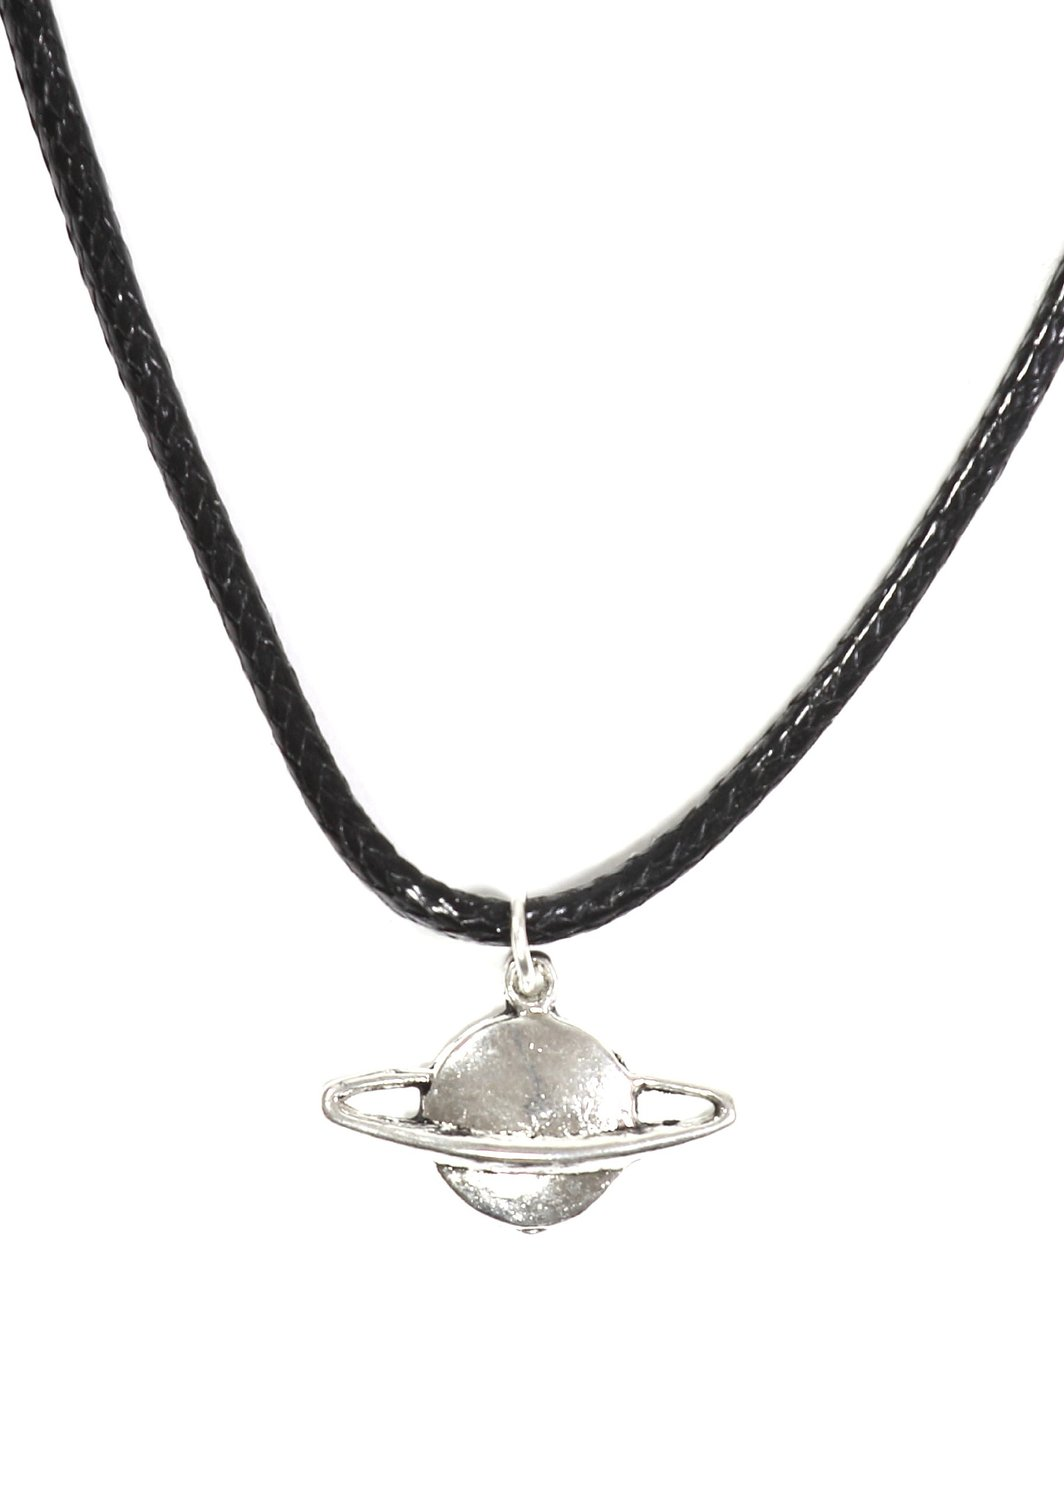 Amazon.com: planet saturn necklace outer space silver tone pendant np06 fashion jewelry: jewelry